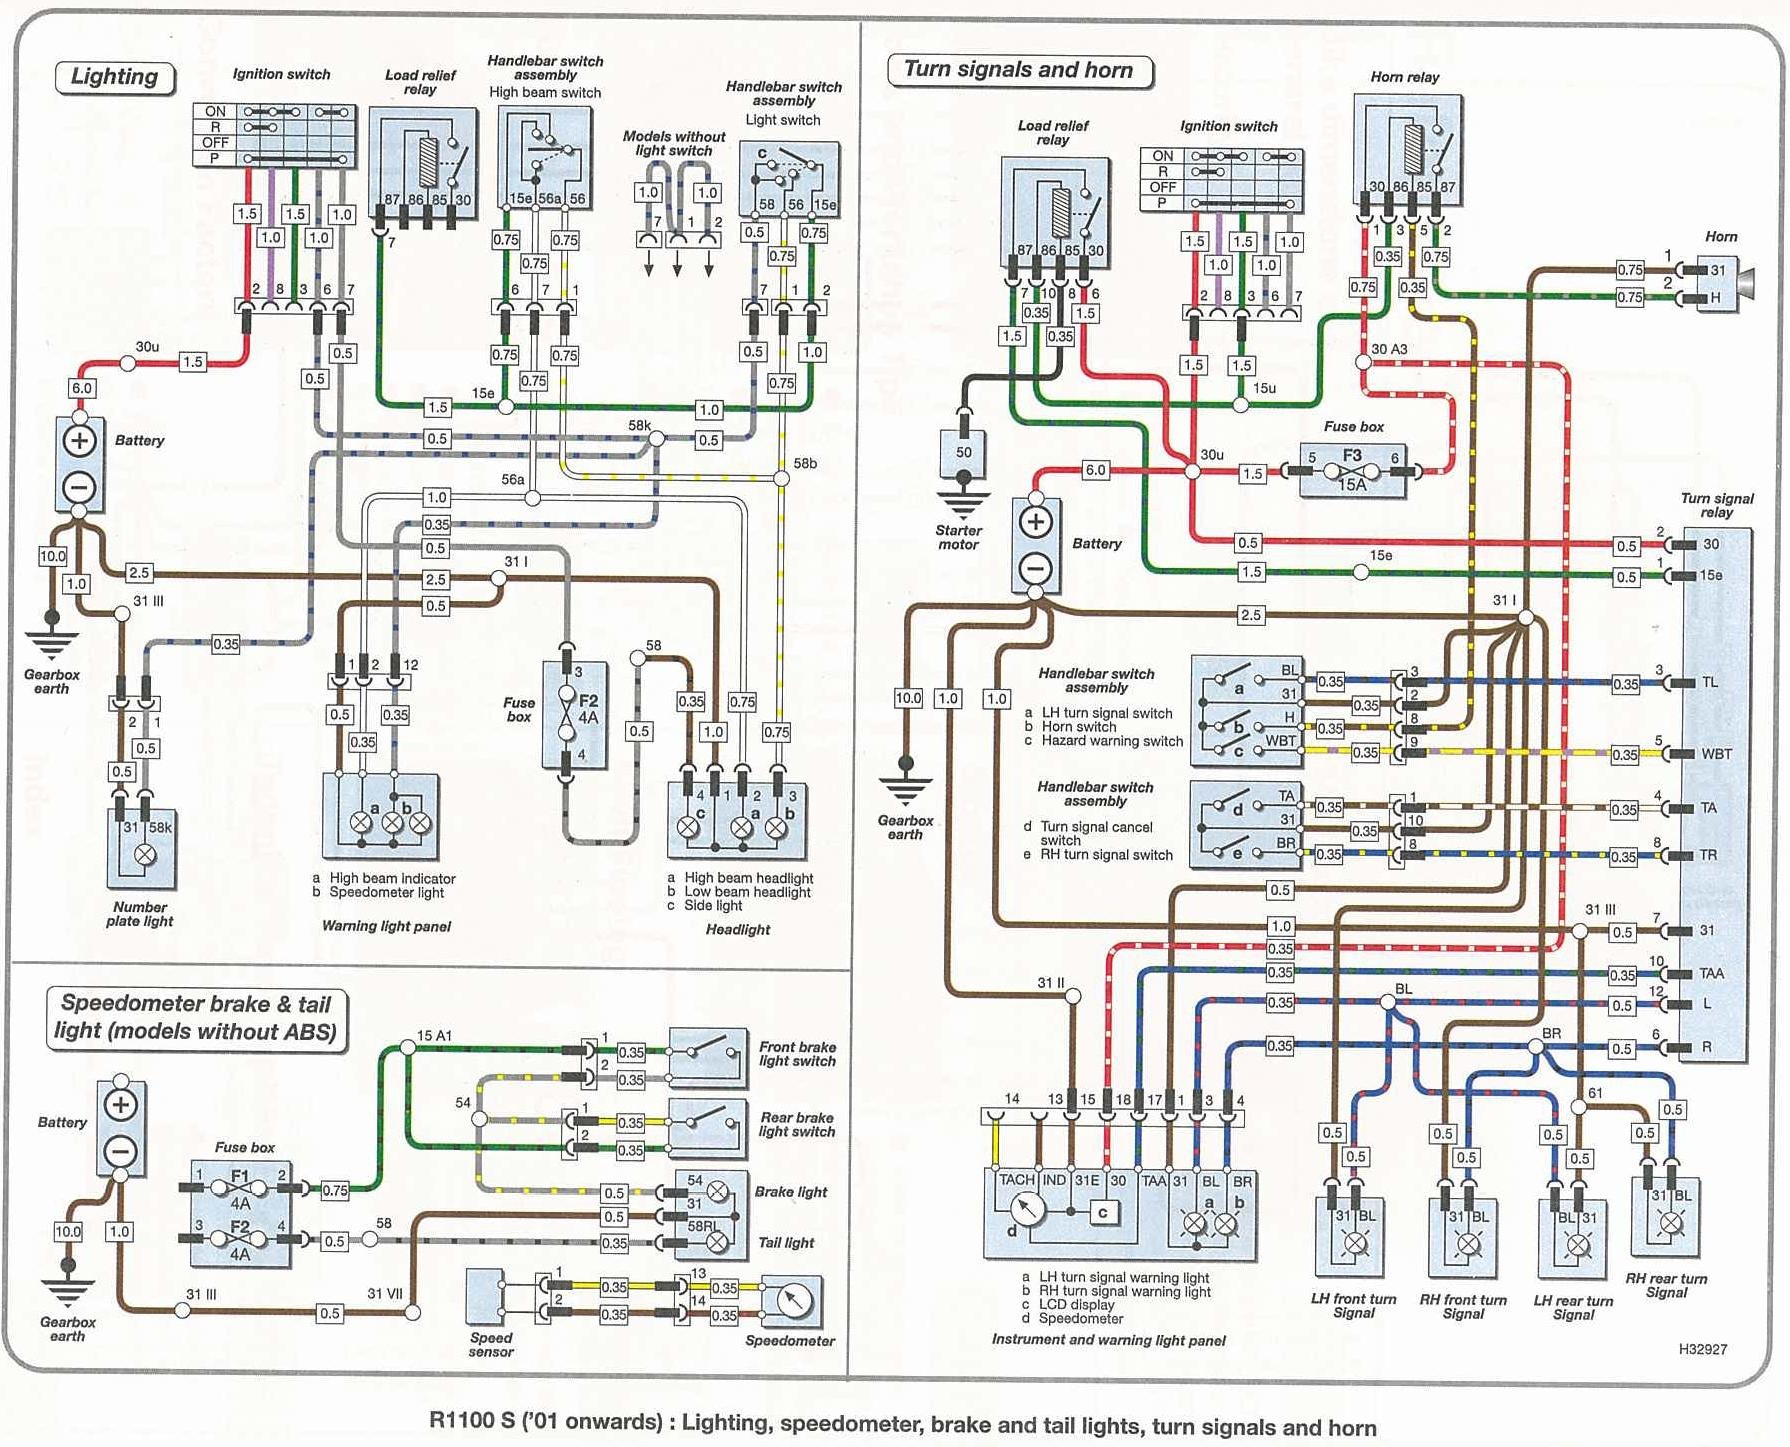 wiring06 bmw r1100s wiring diagrams bmw wiring diagrams at mifinder.co